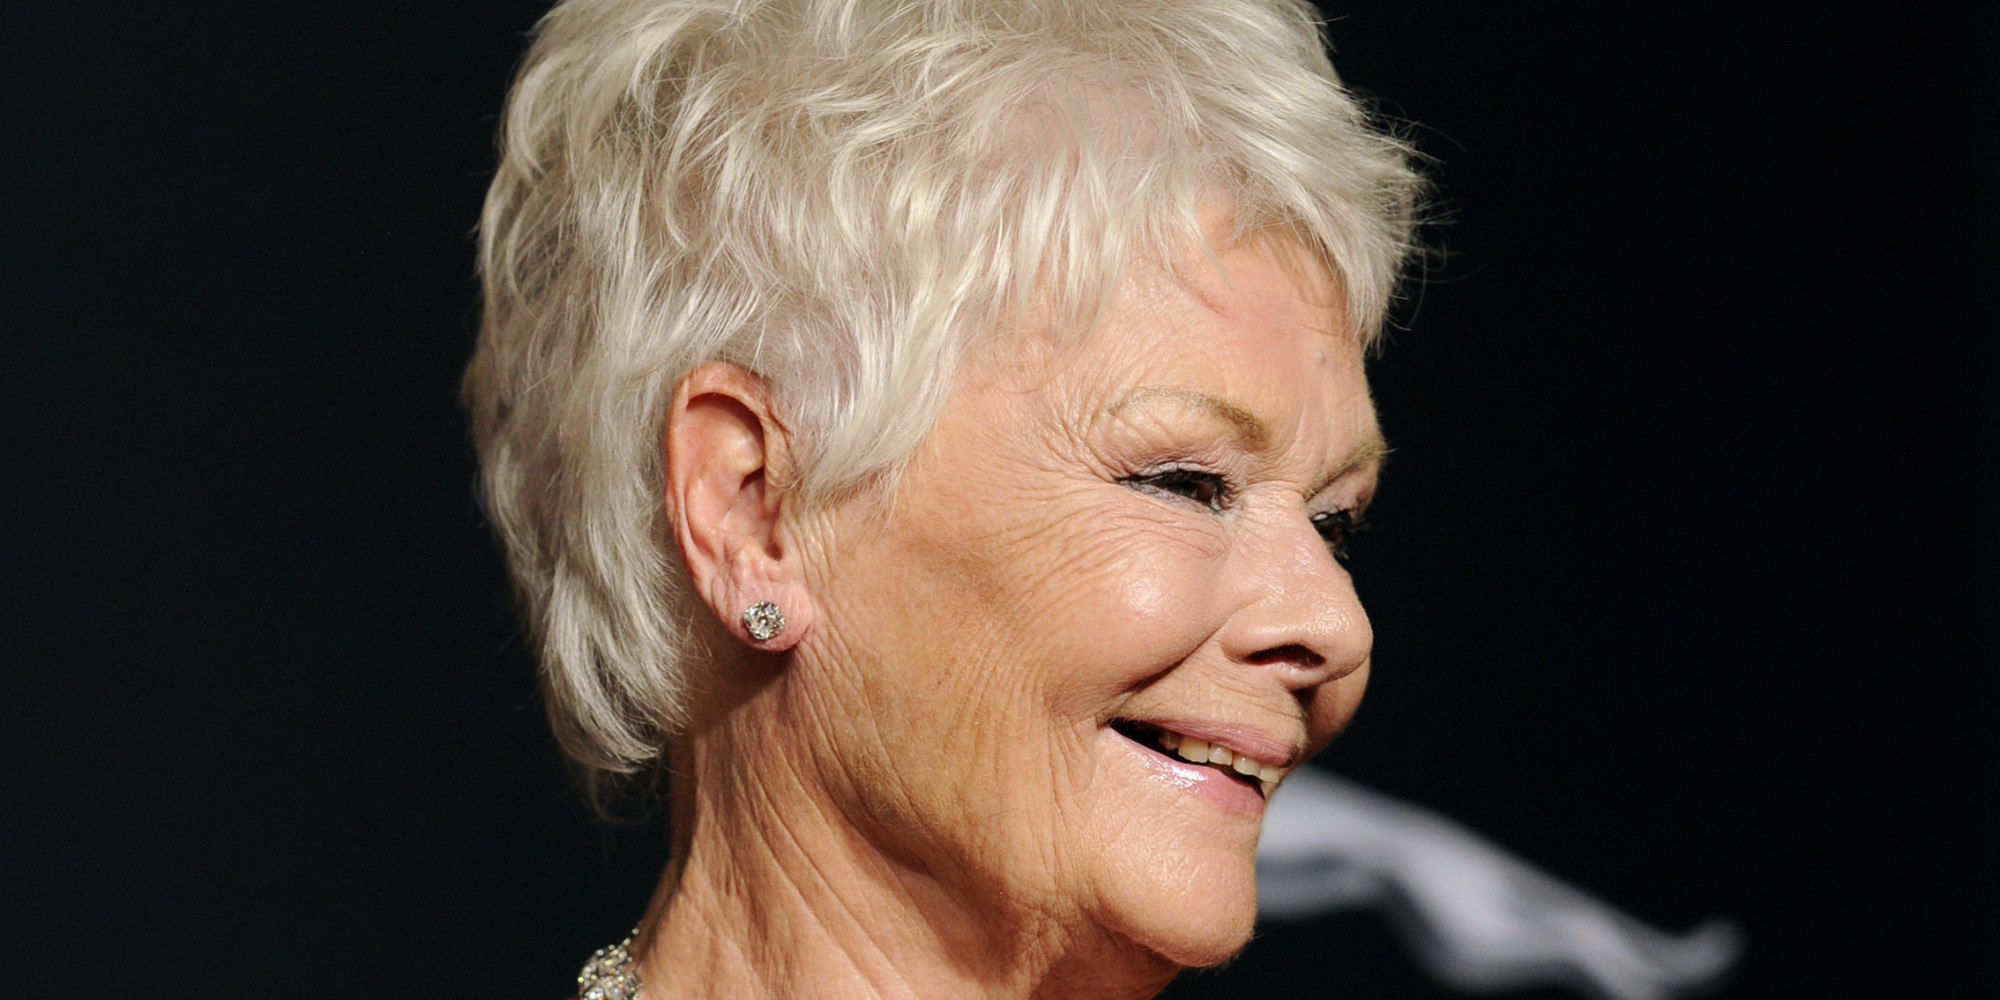 Yep Judi Dench Considered Getting A Tattoo For Her 80th